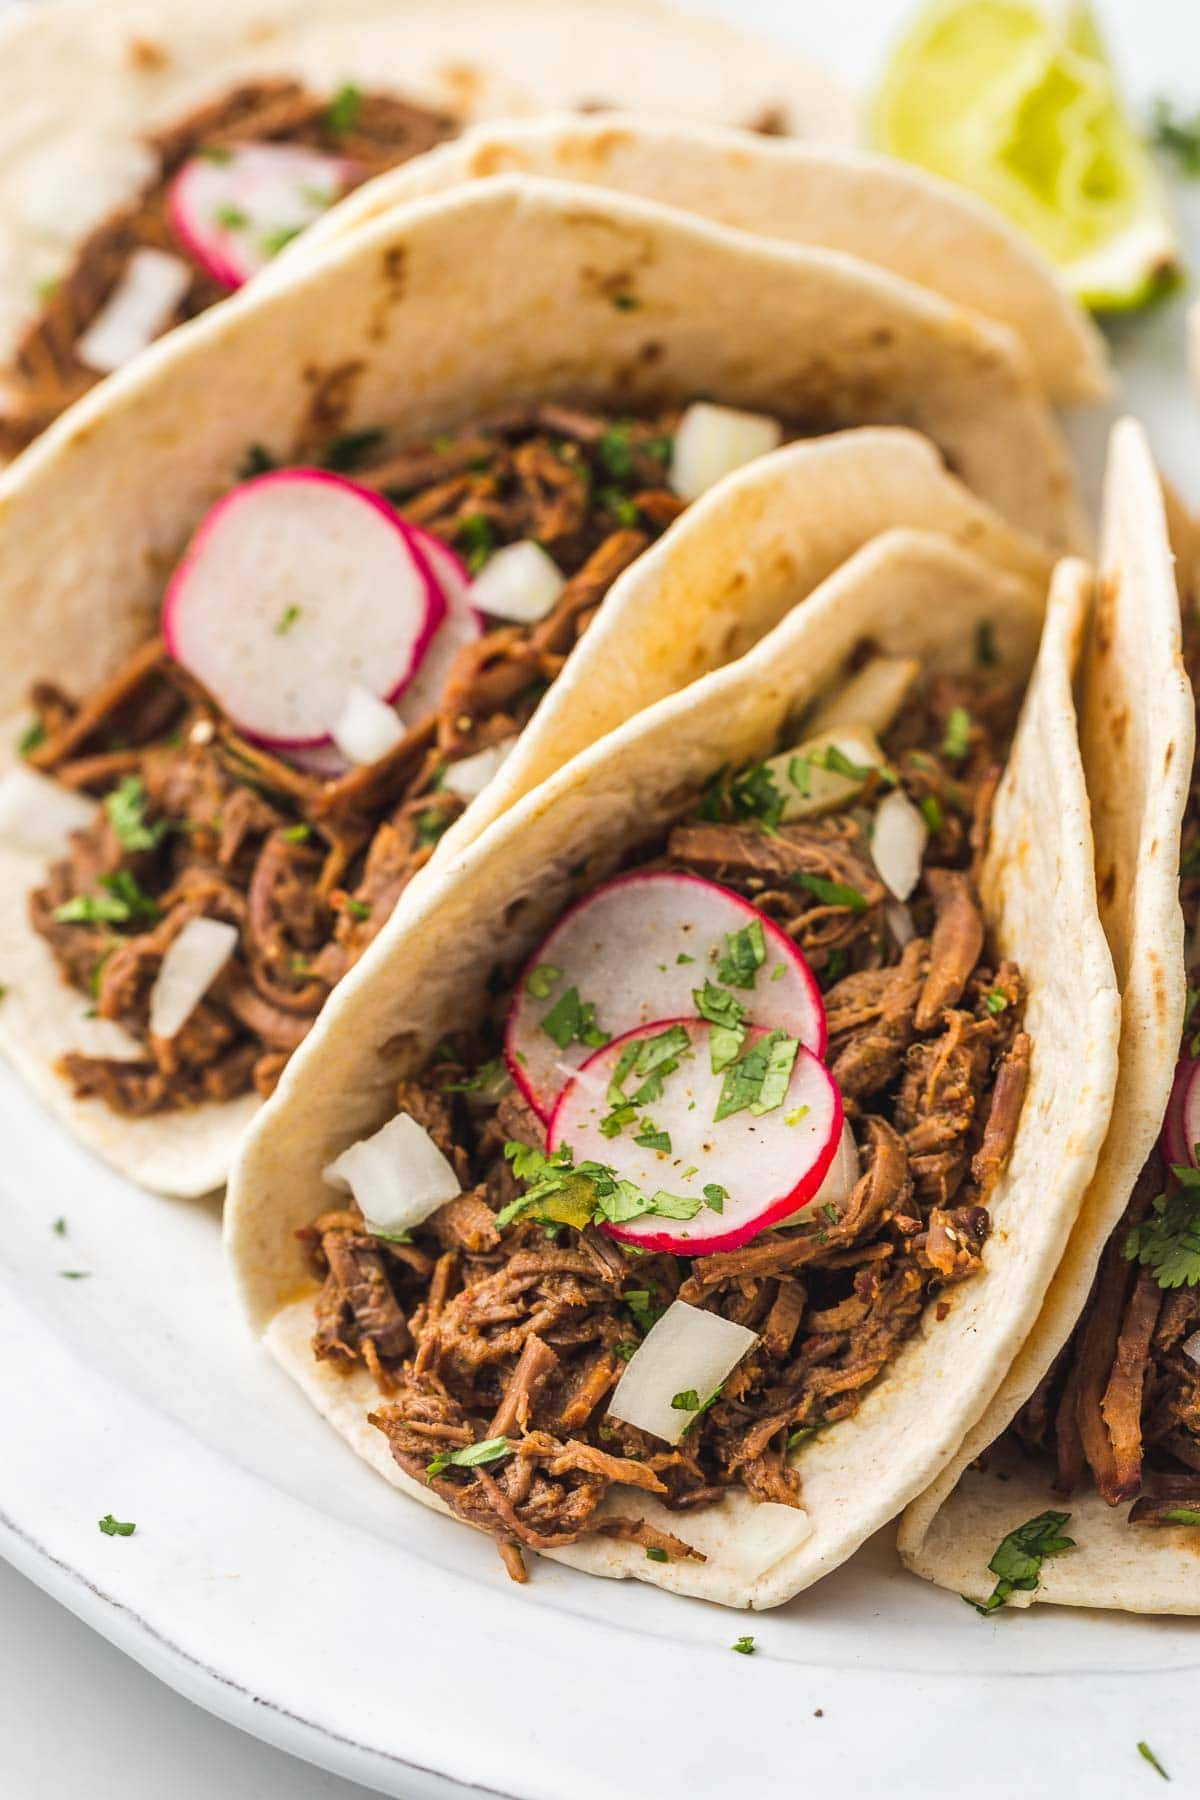 Instant Pot Barbacoa Beef tacos with onion, radish, and parsley.